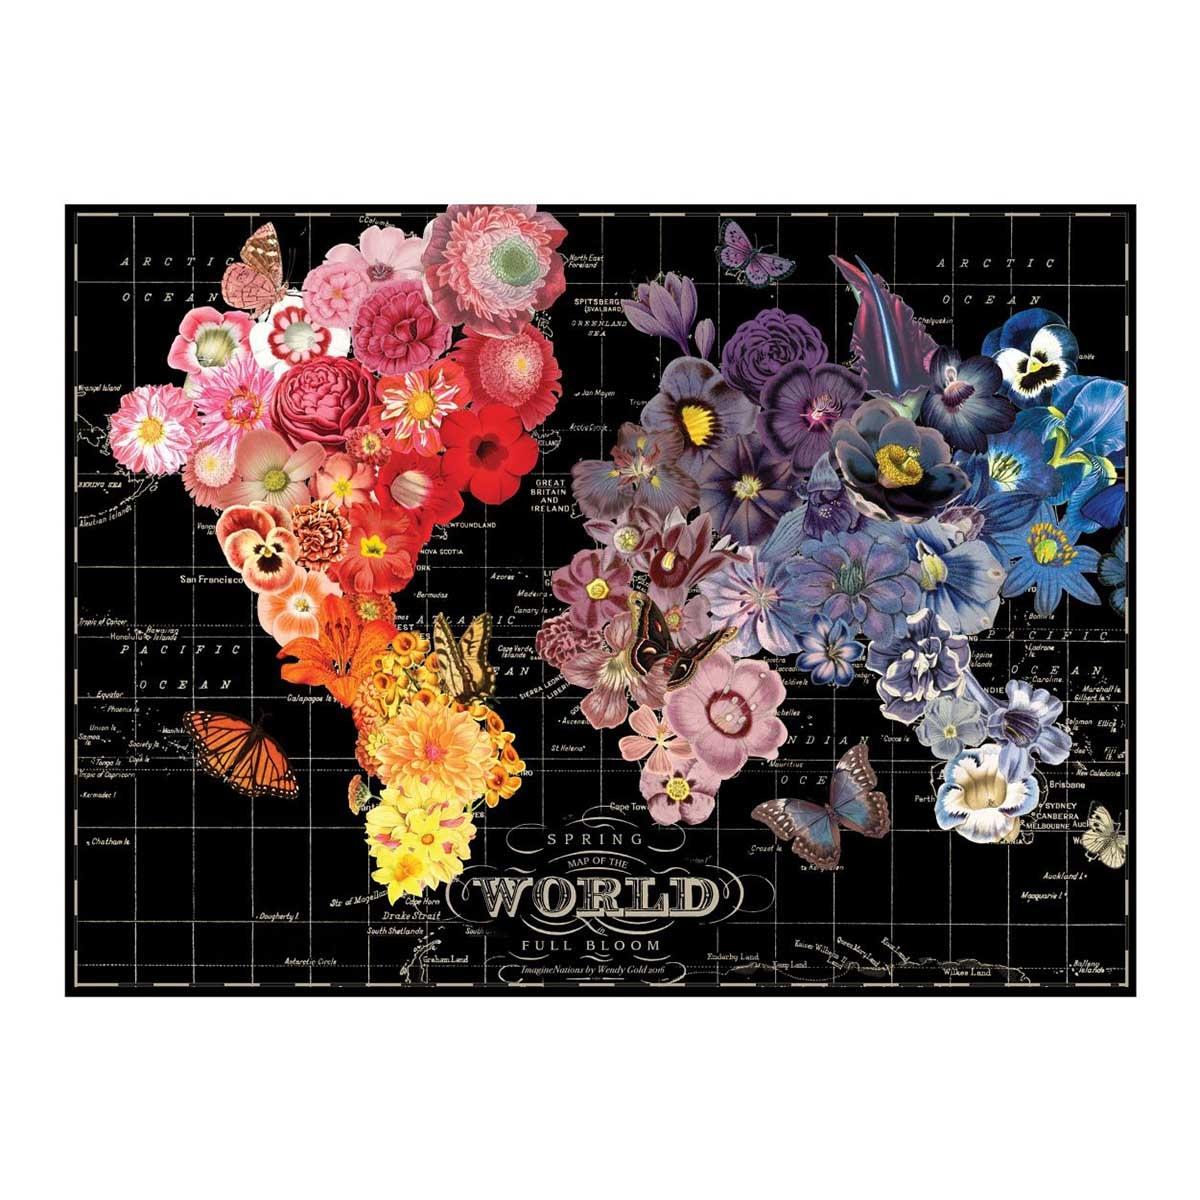 wendy gold full bloom 1000 pc puzzle-1